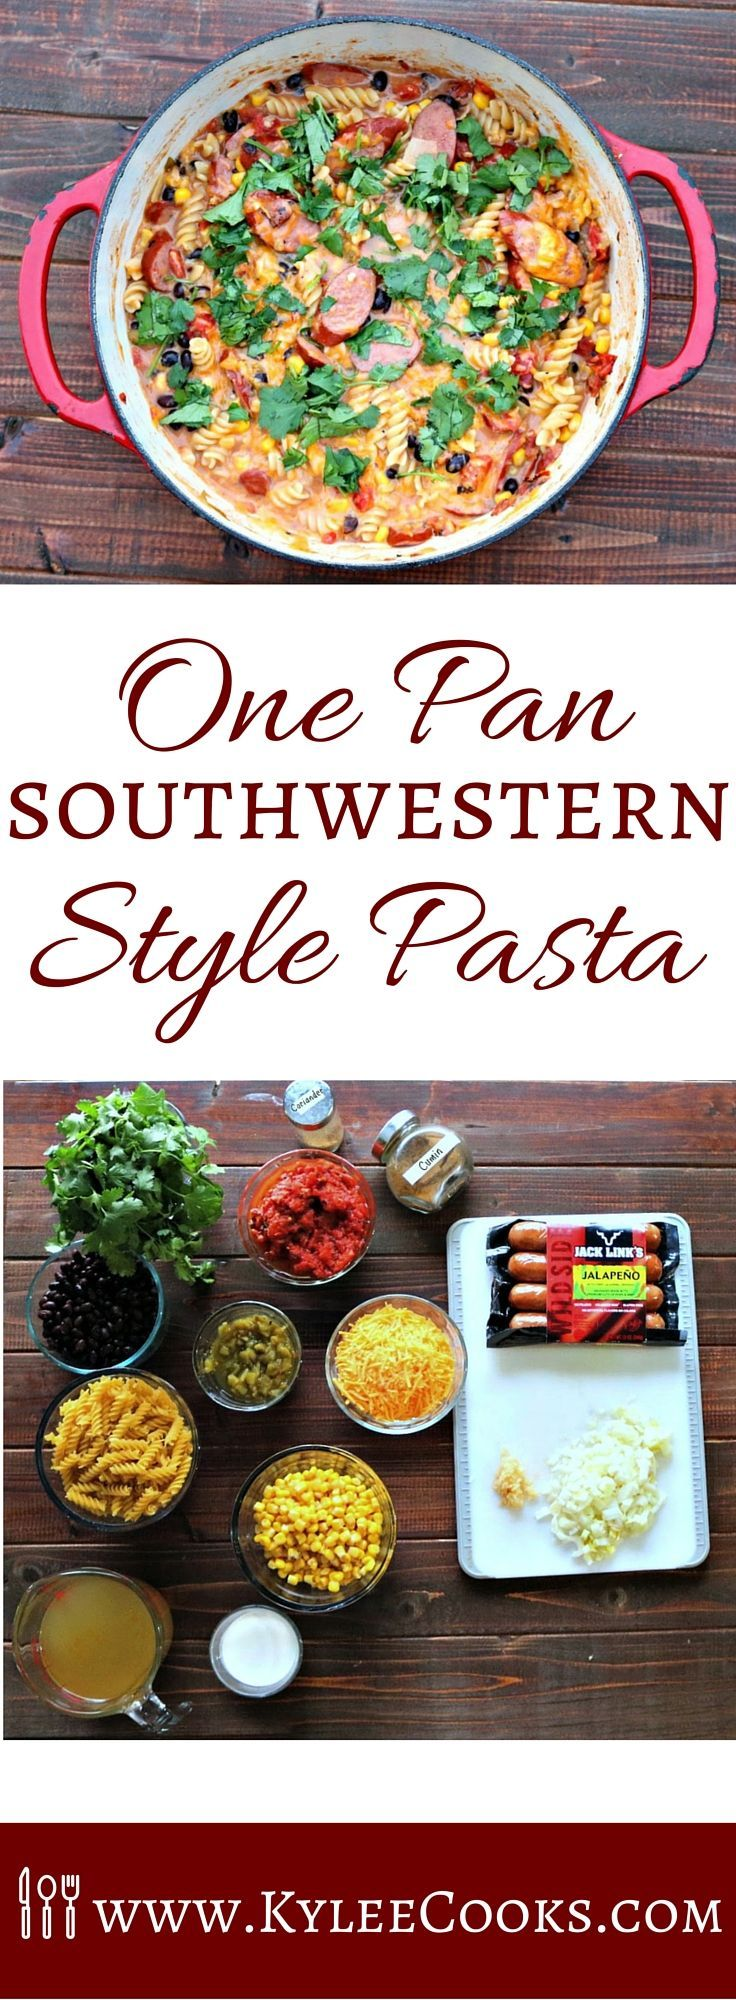 Tired of dull flavorless weeknight meals? How about a bold, flavorful, dinner…. from the wild side?  This one pan southwestern style pasta will have you fighting your family for the leftovers.